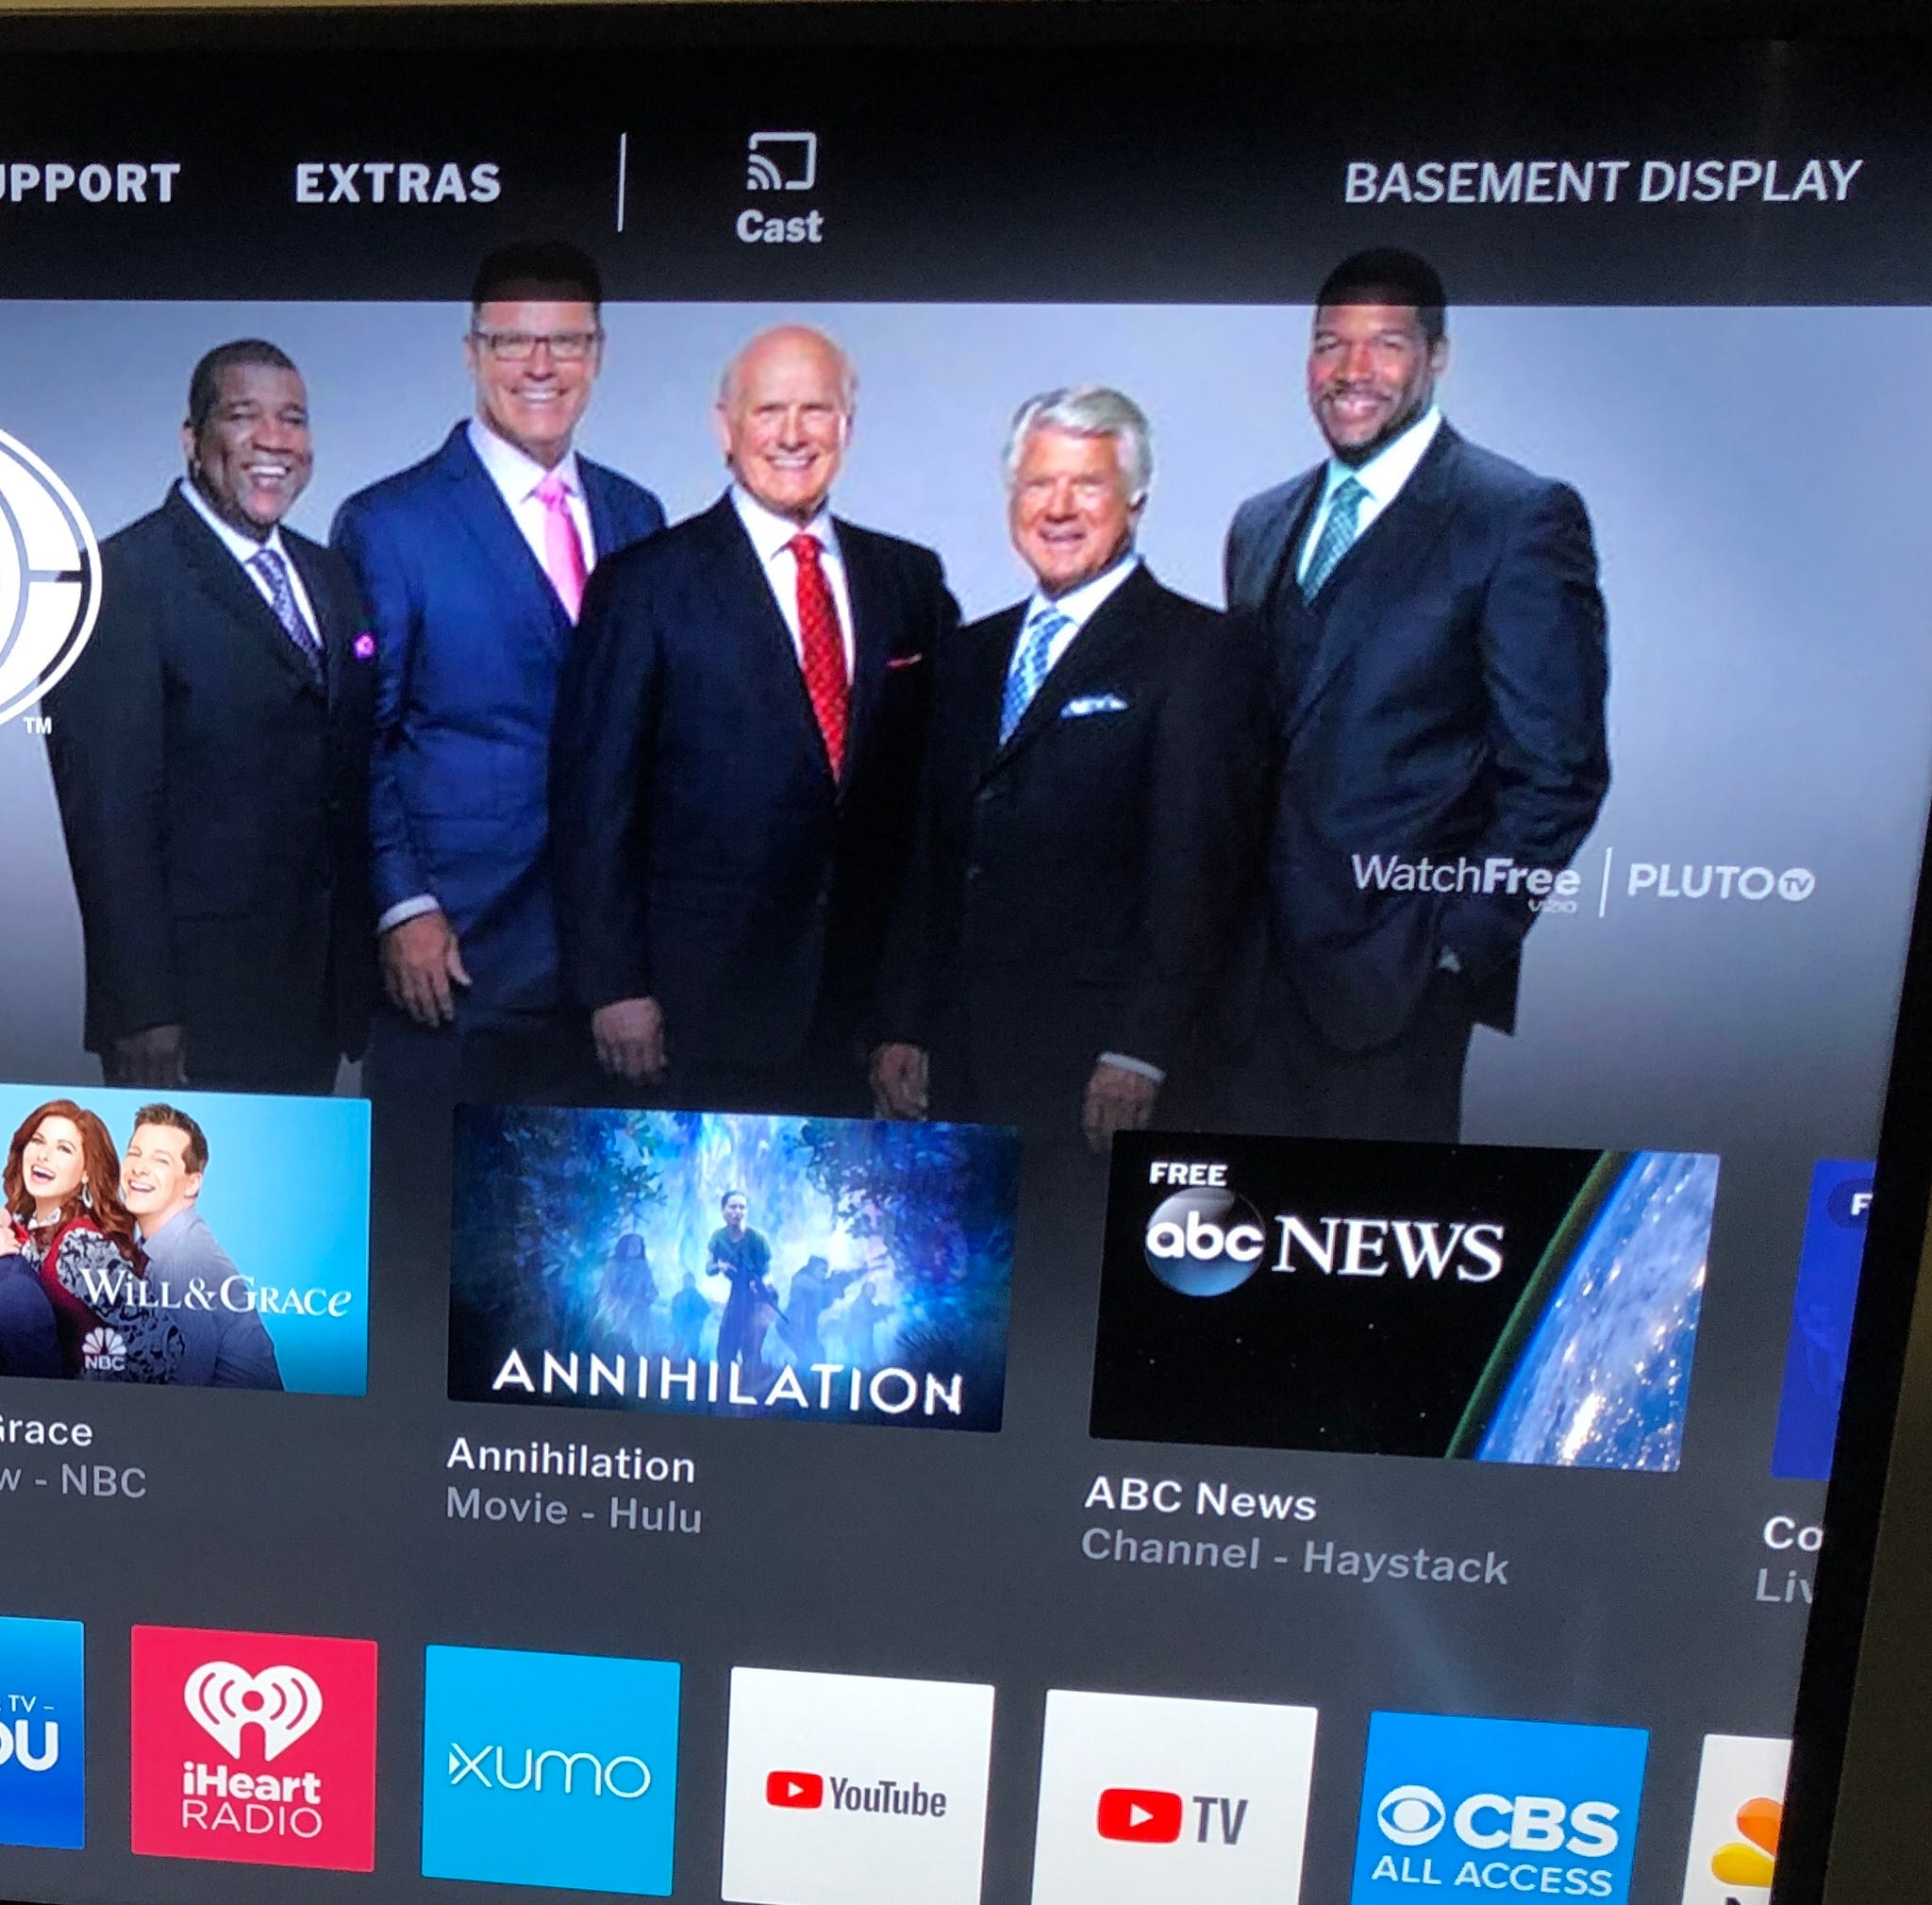 Watch Free channel is re-branded Pluto TV for Vizio smart TVs